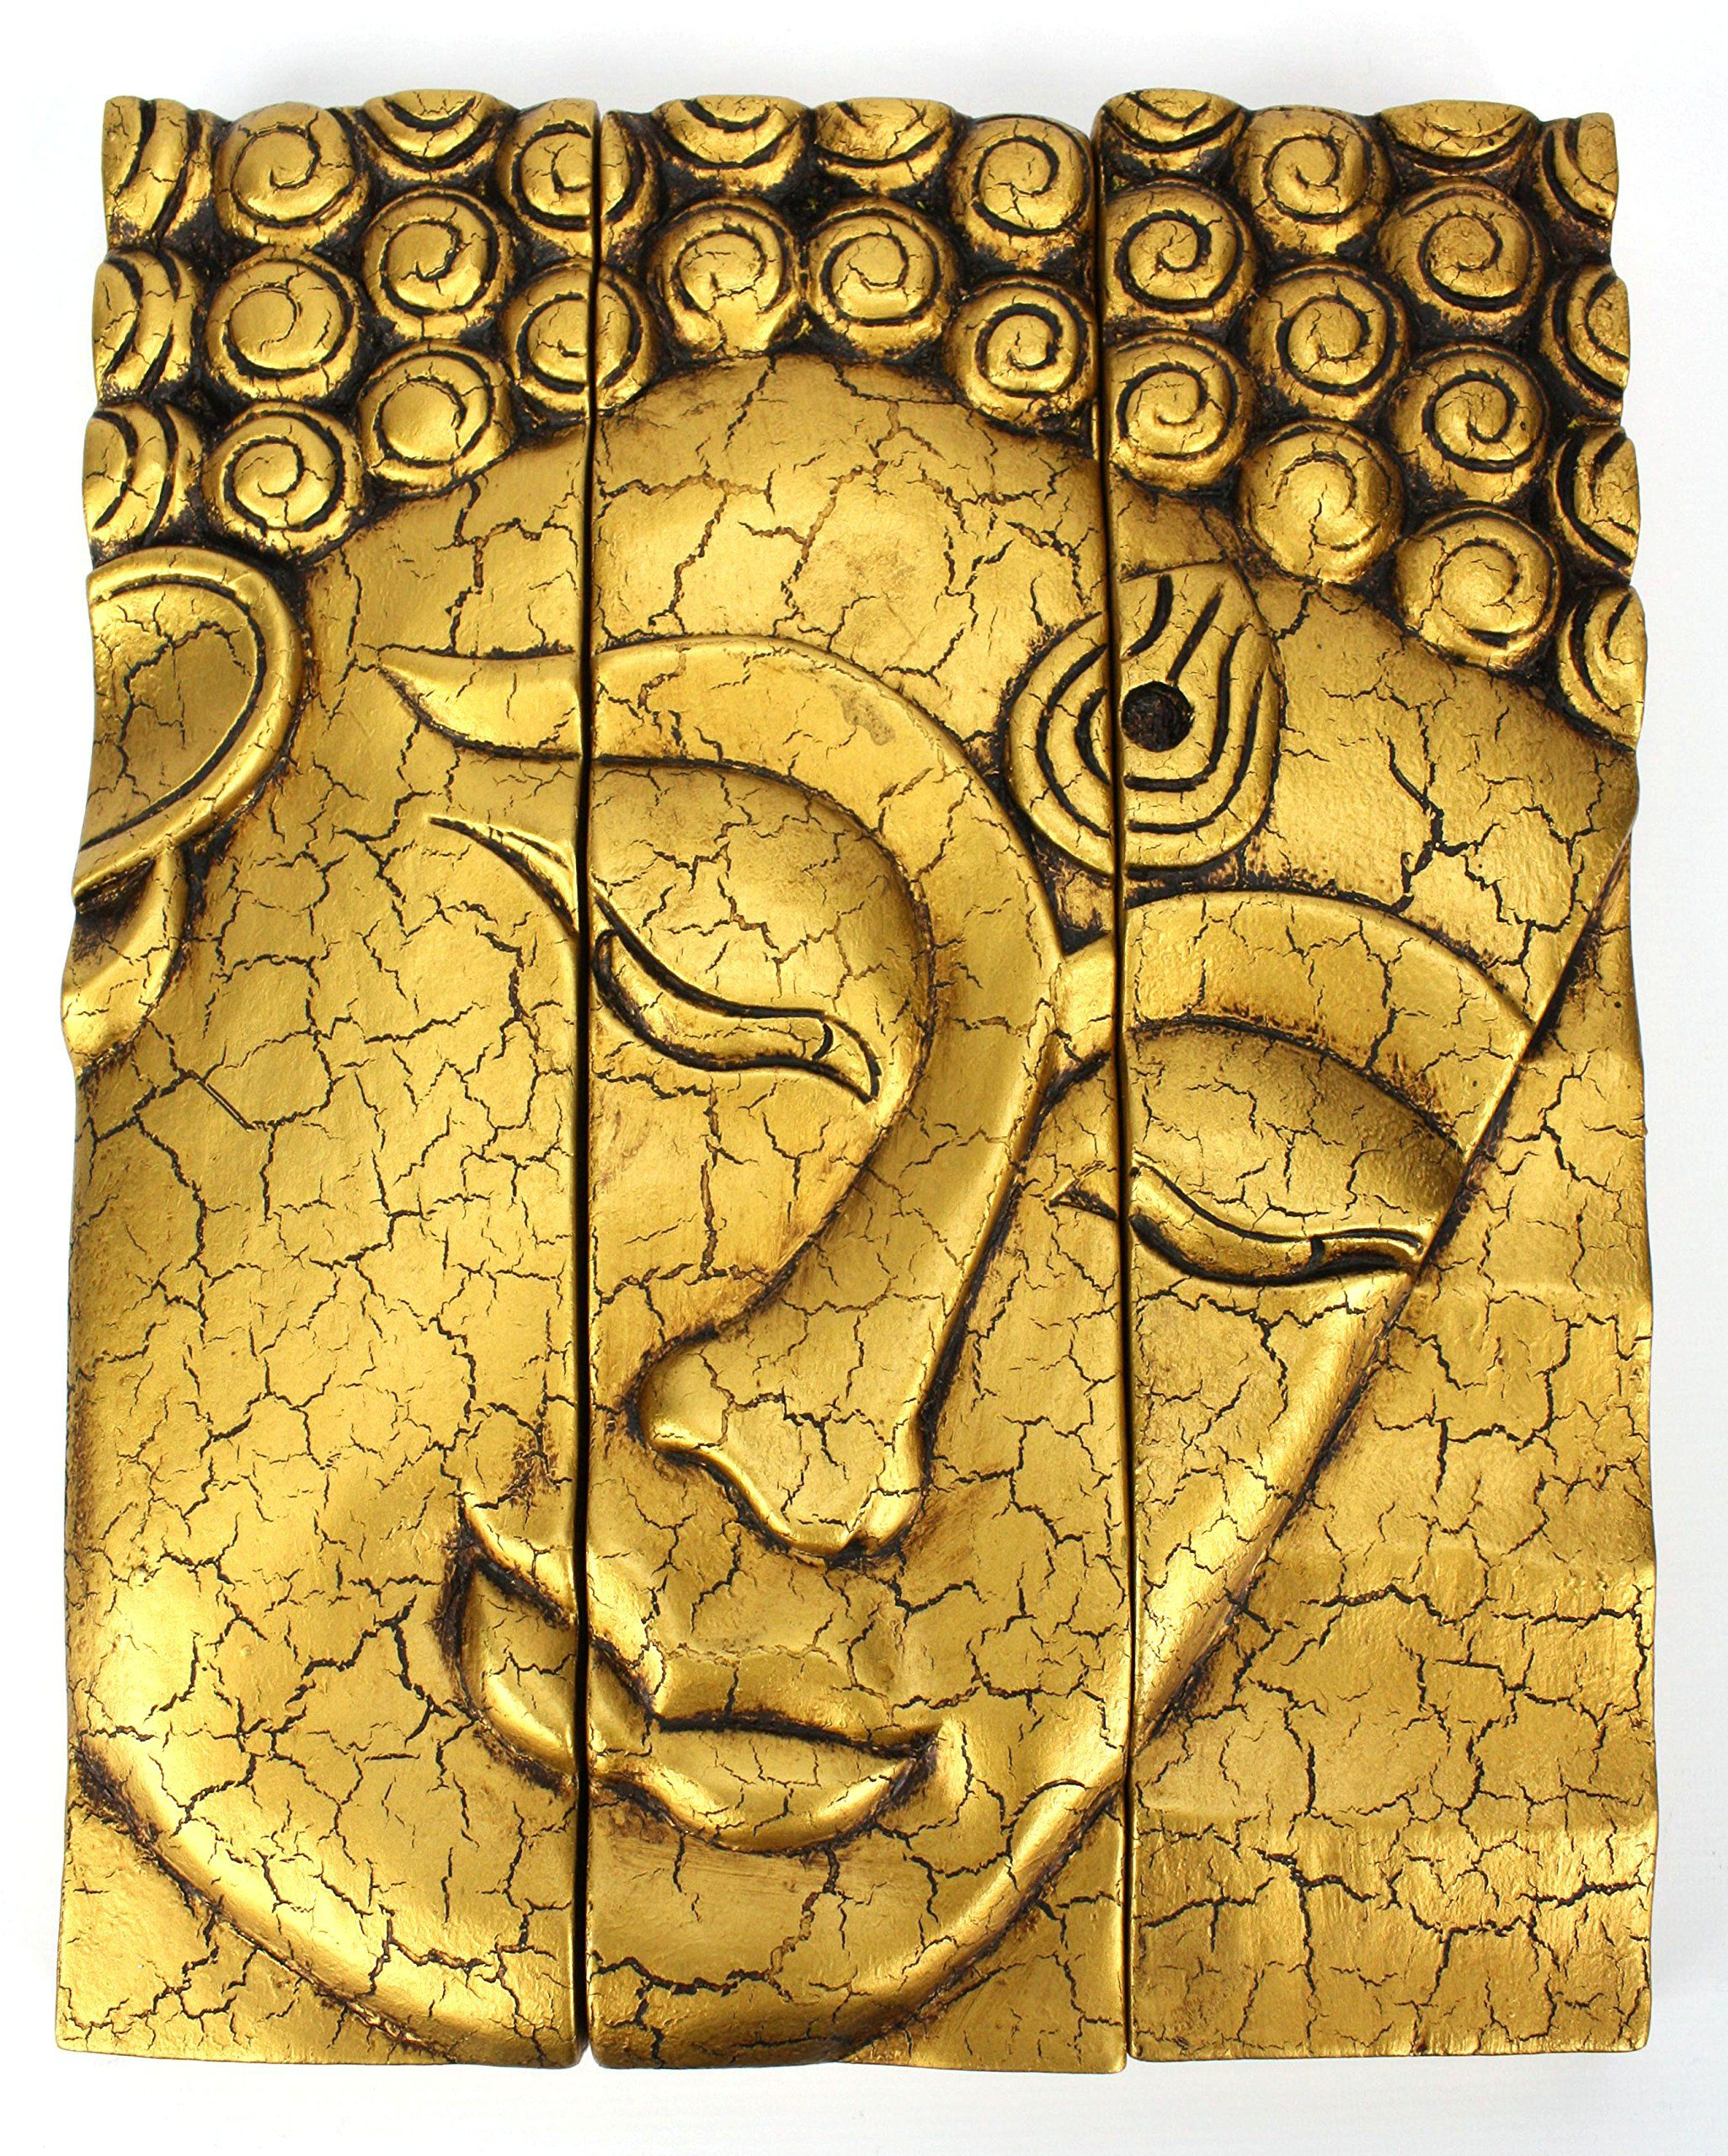 3-part Thai Buddha face panel - cracked Gold finish, carved wood ...